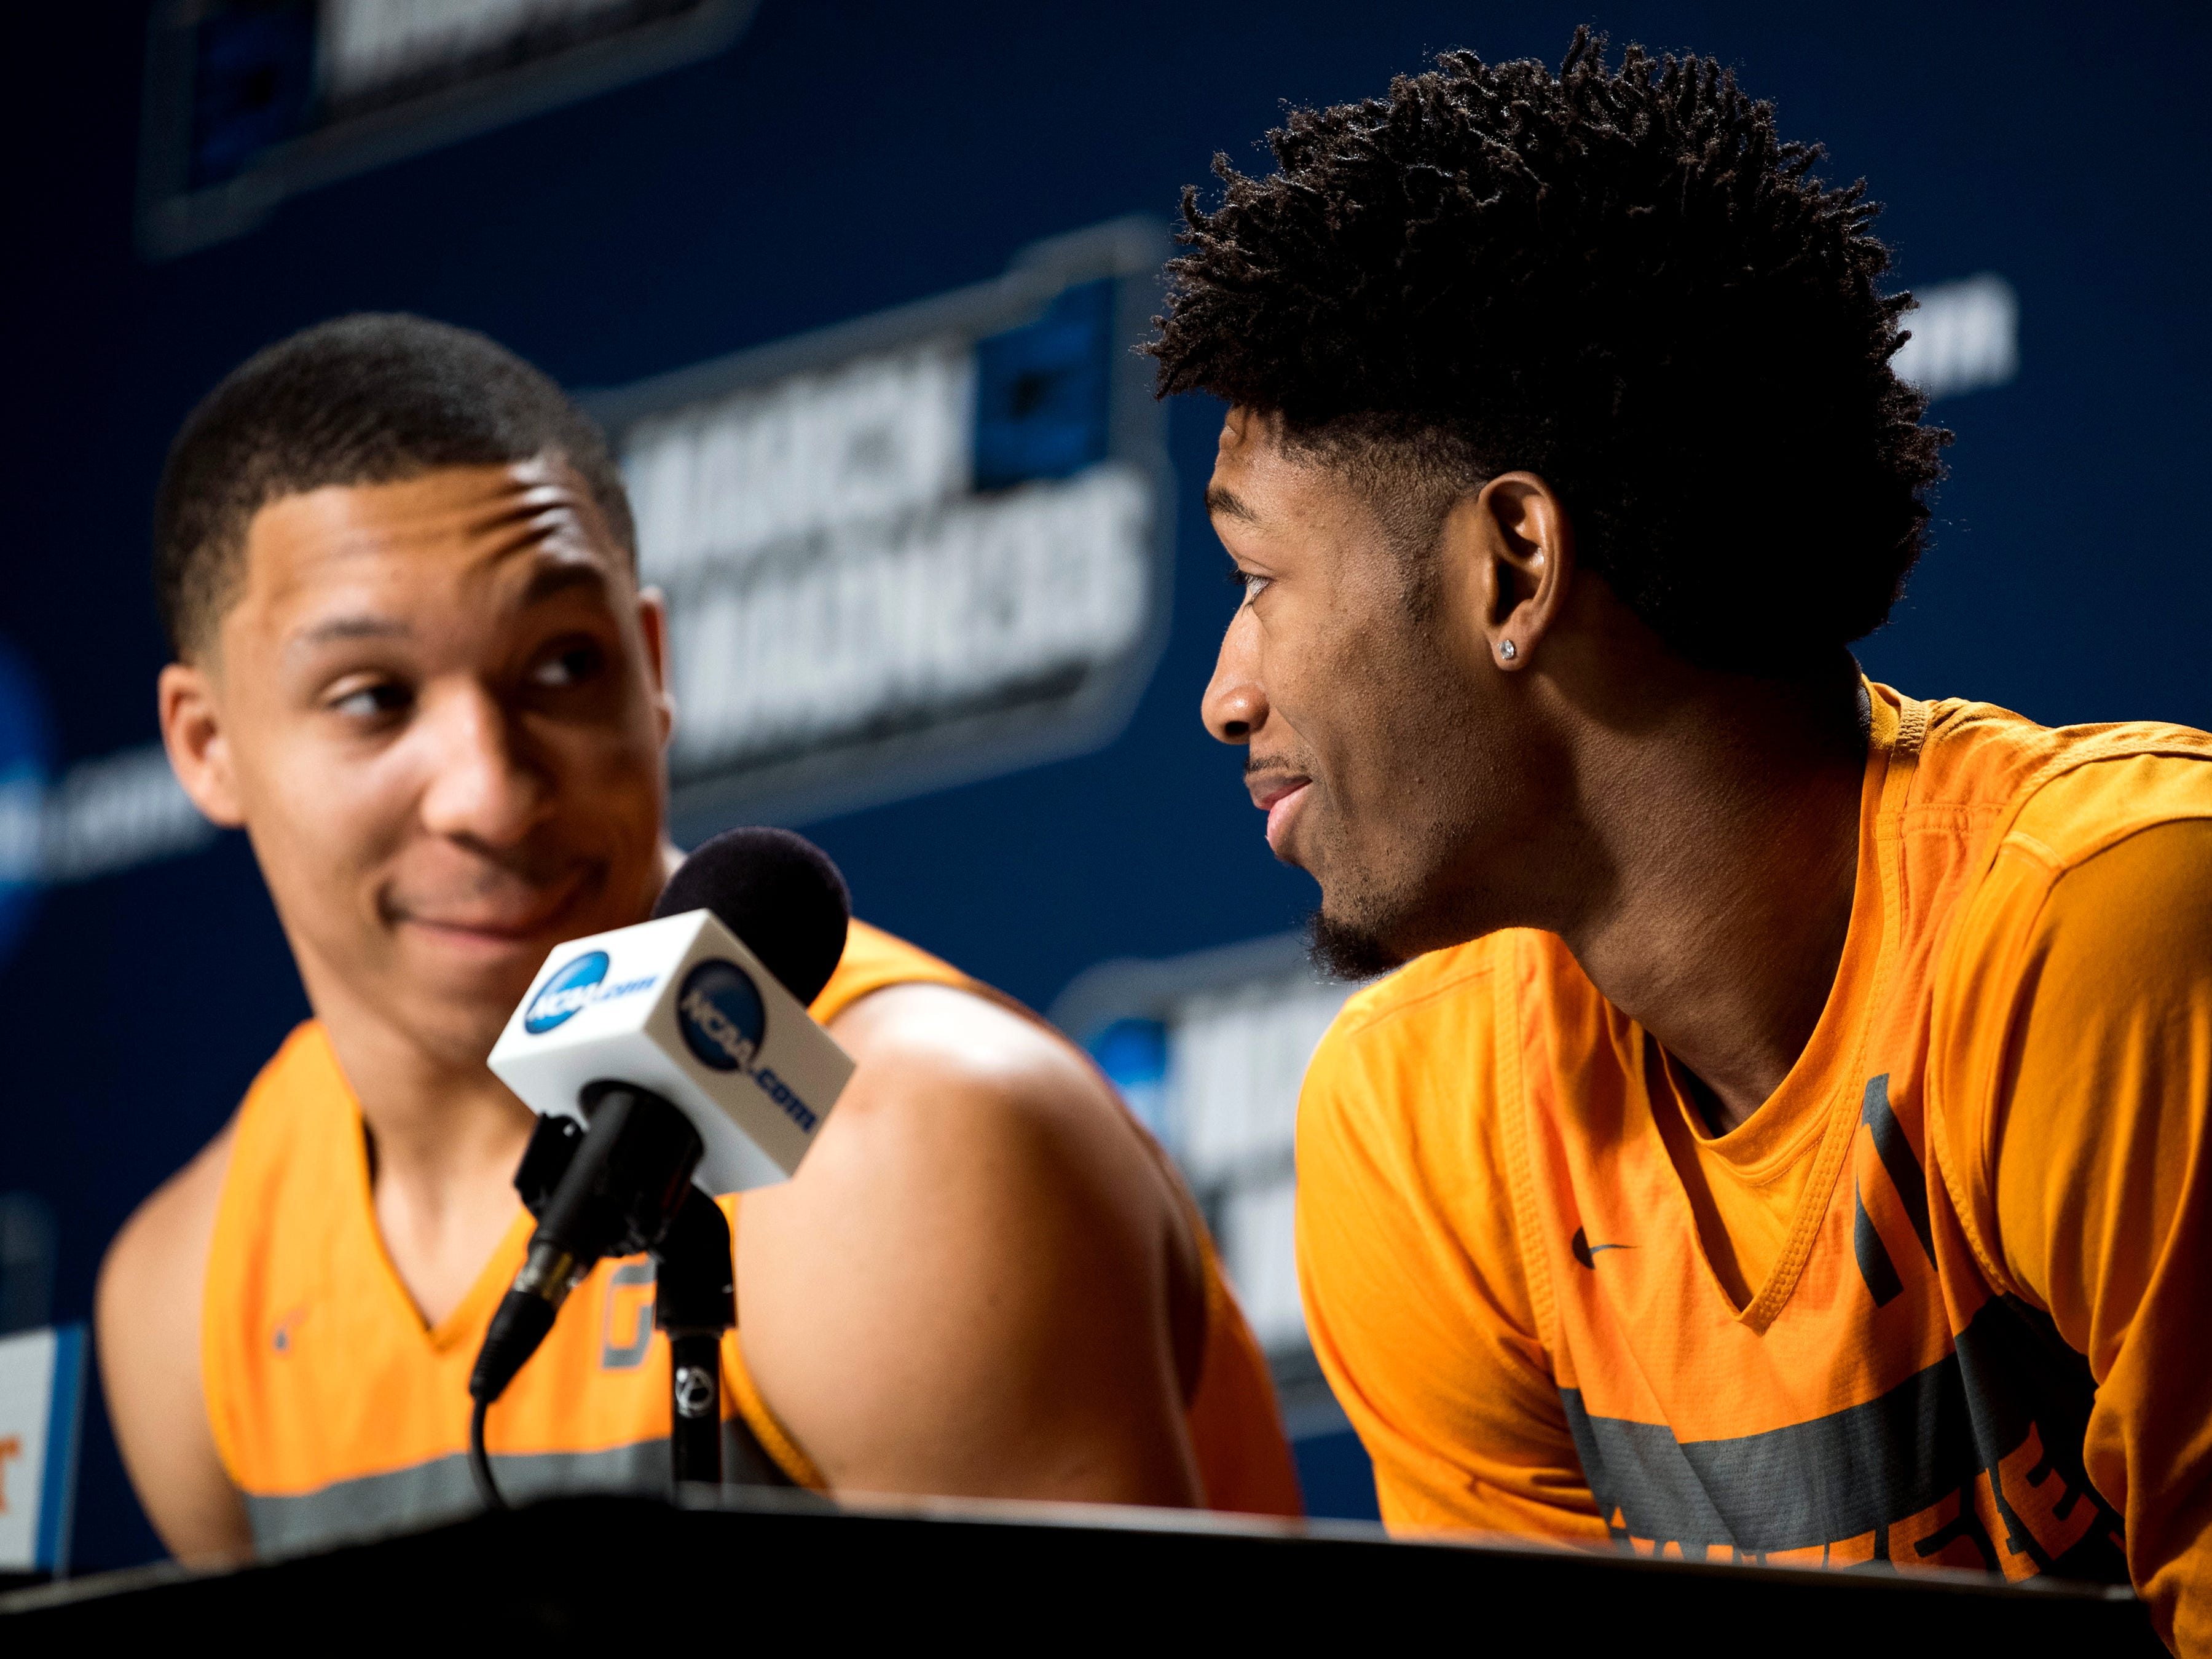 Tennessee forward Kyle Alexander (11) glances over at Tennessee forward Grant Williams (2) at a press conference on Saturday, March 23, 2019, before the Tennessee Volunteers and Iowa Hawkeyes compete against one another in the second round of the NCAA Tournament held at Nationwide Arena in Columbus, Ohio on Sunday, March 24, 2019.